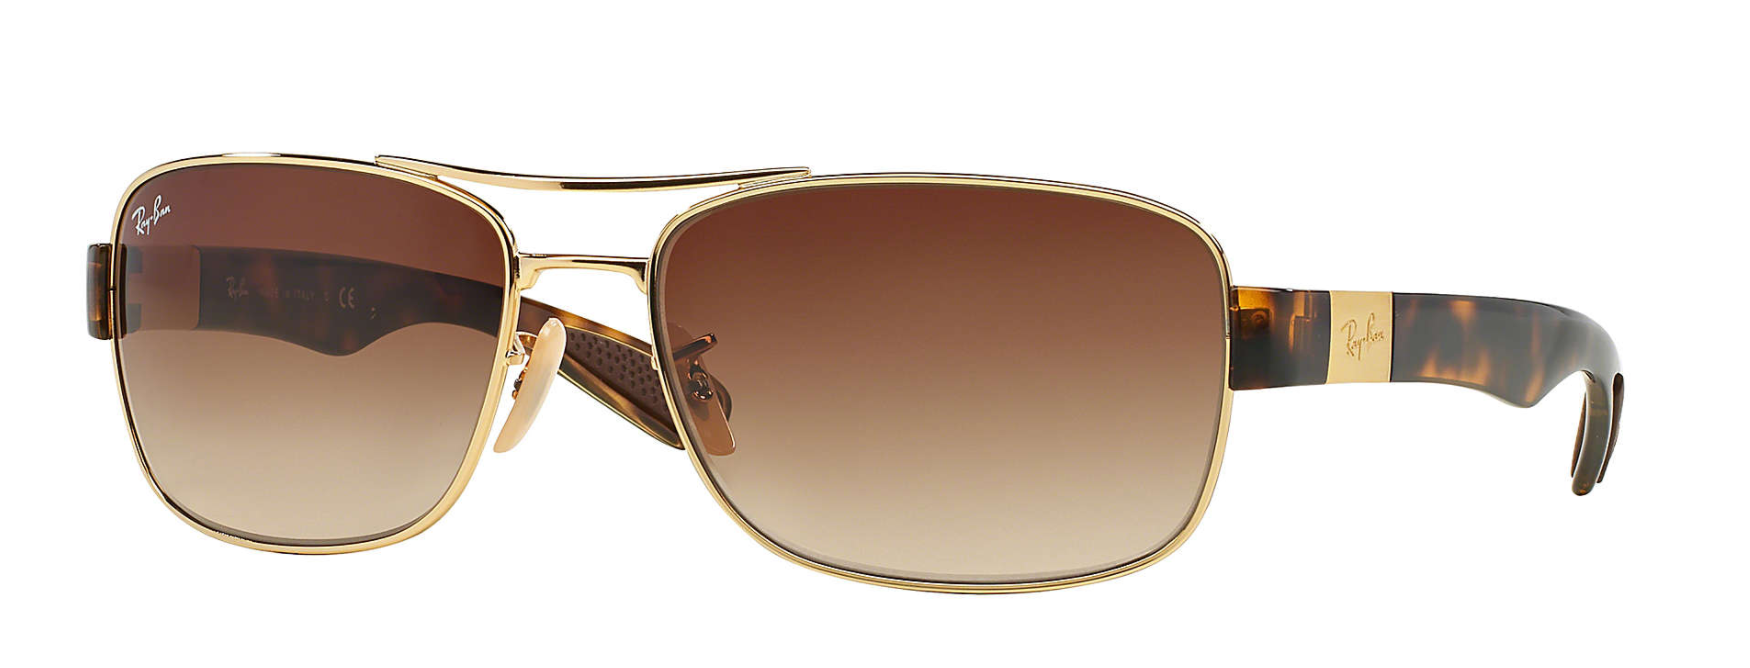 Gold Tortoise, Brown Gradient Lenses, 61mm